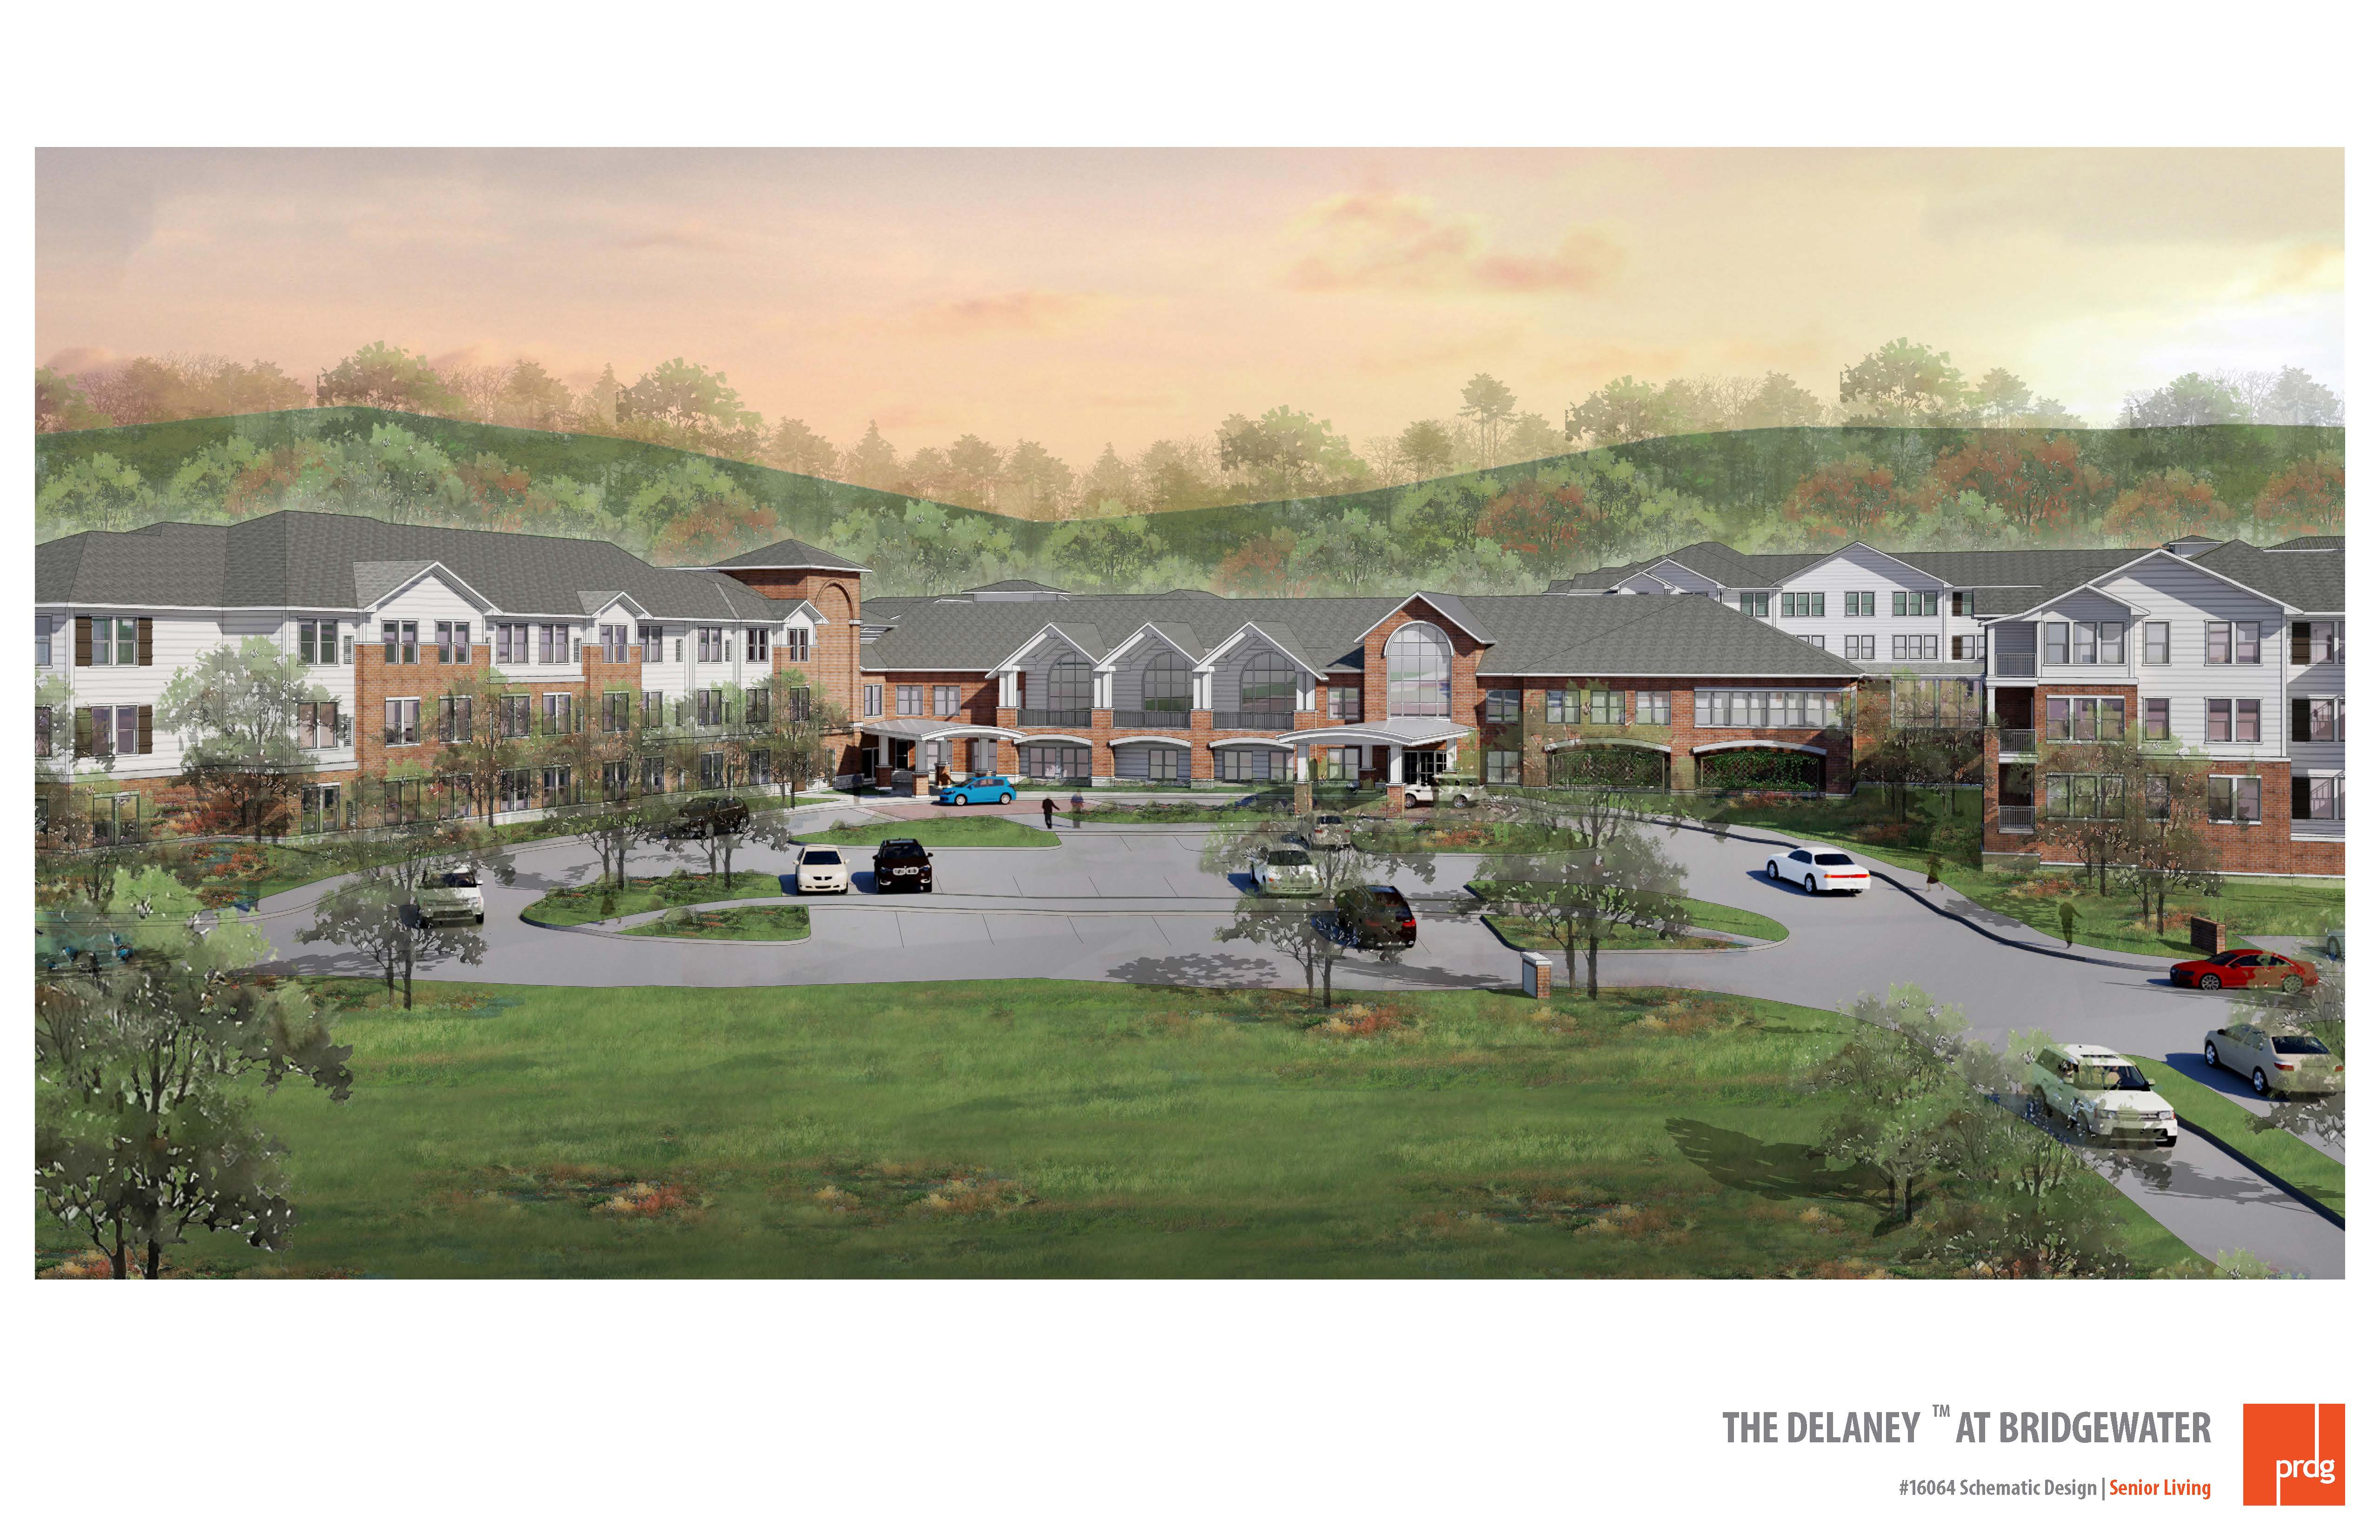 Rendering of The Delaney at Bridgewater, a senior living community developed by LCS Development